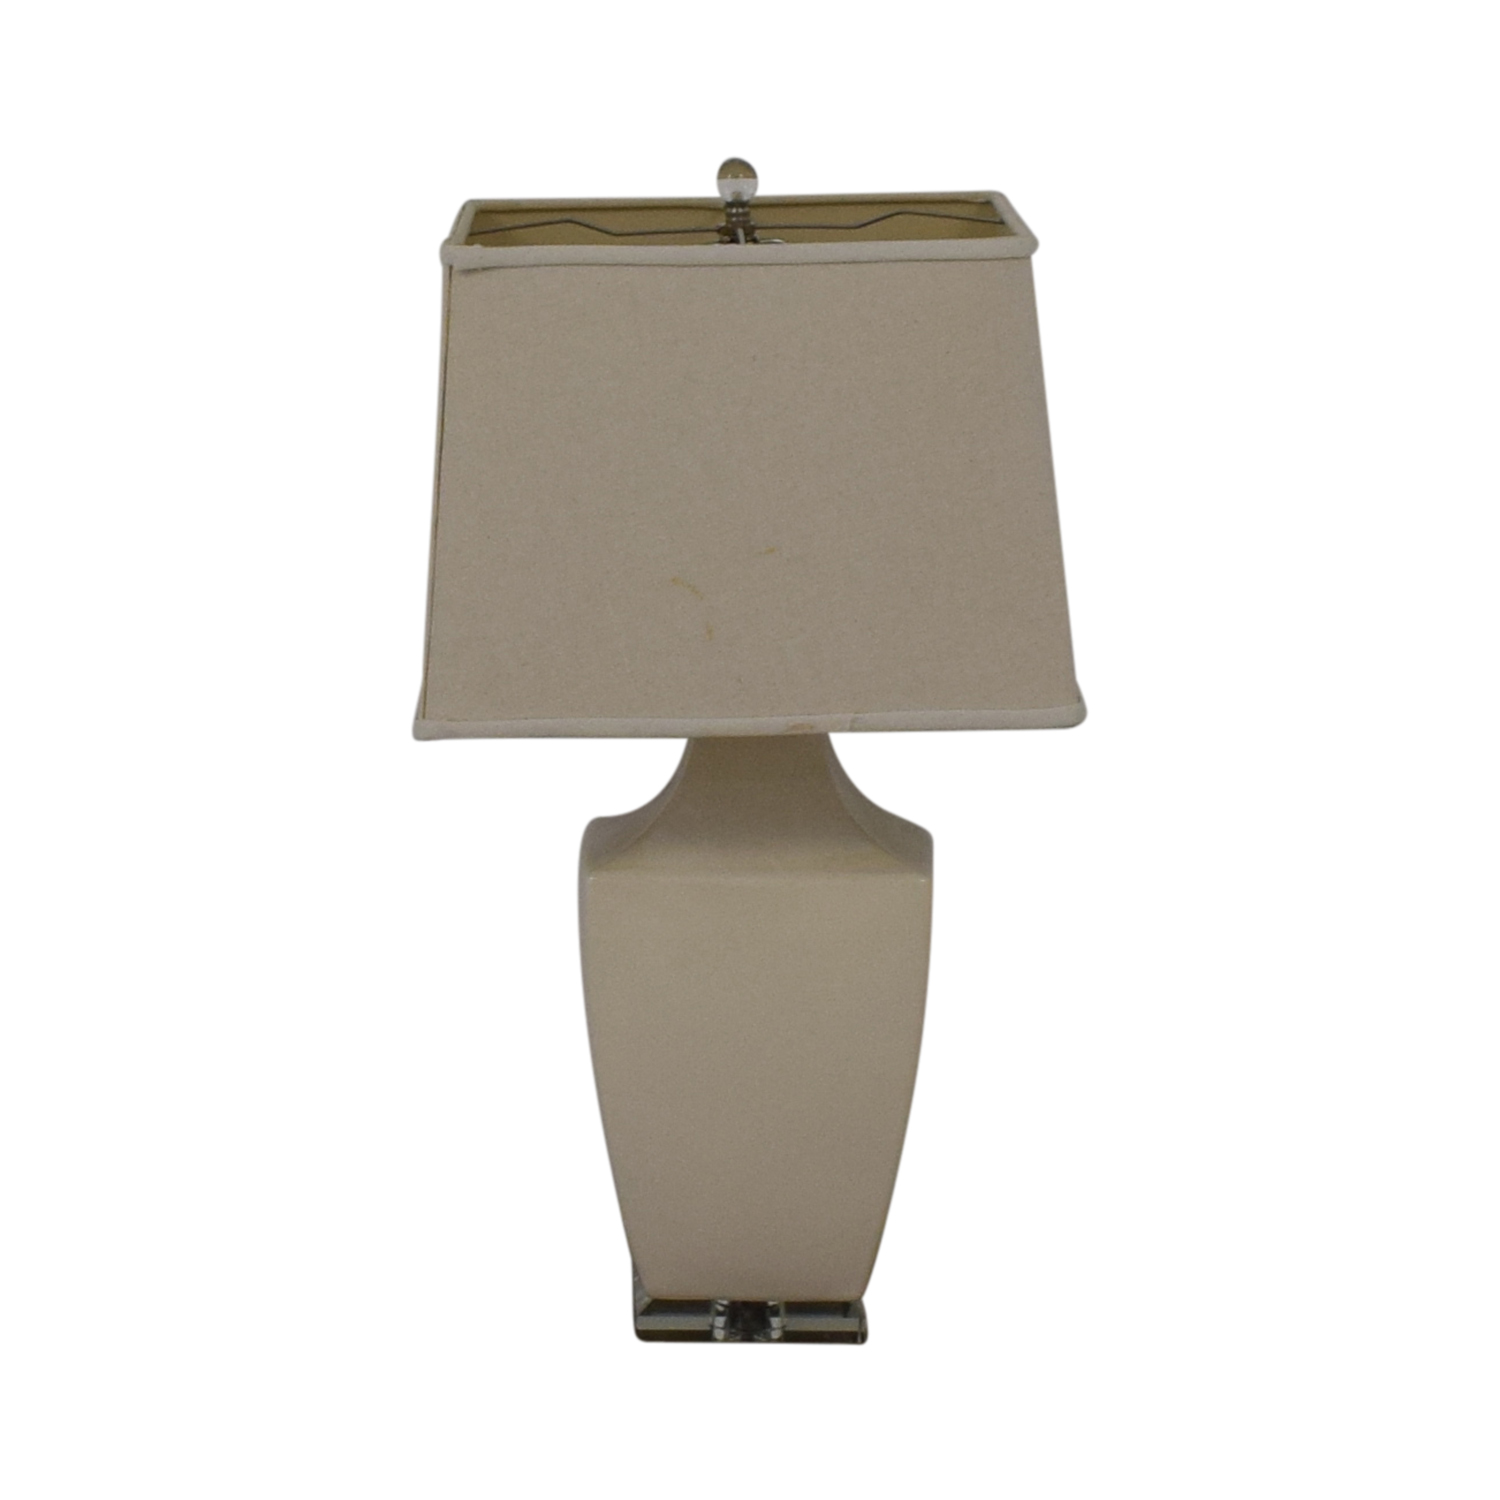 Zinc Door Zinc Door Table Lamp